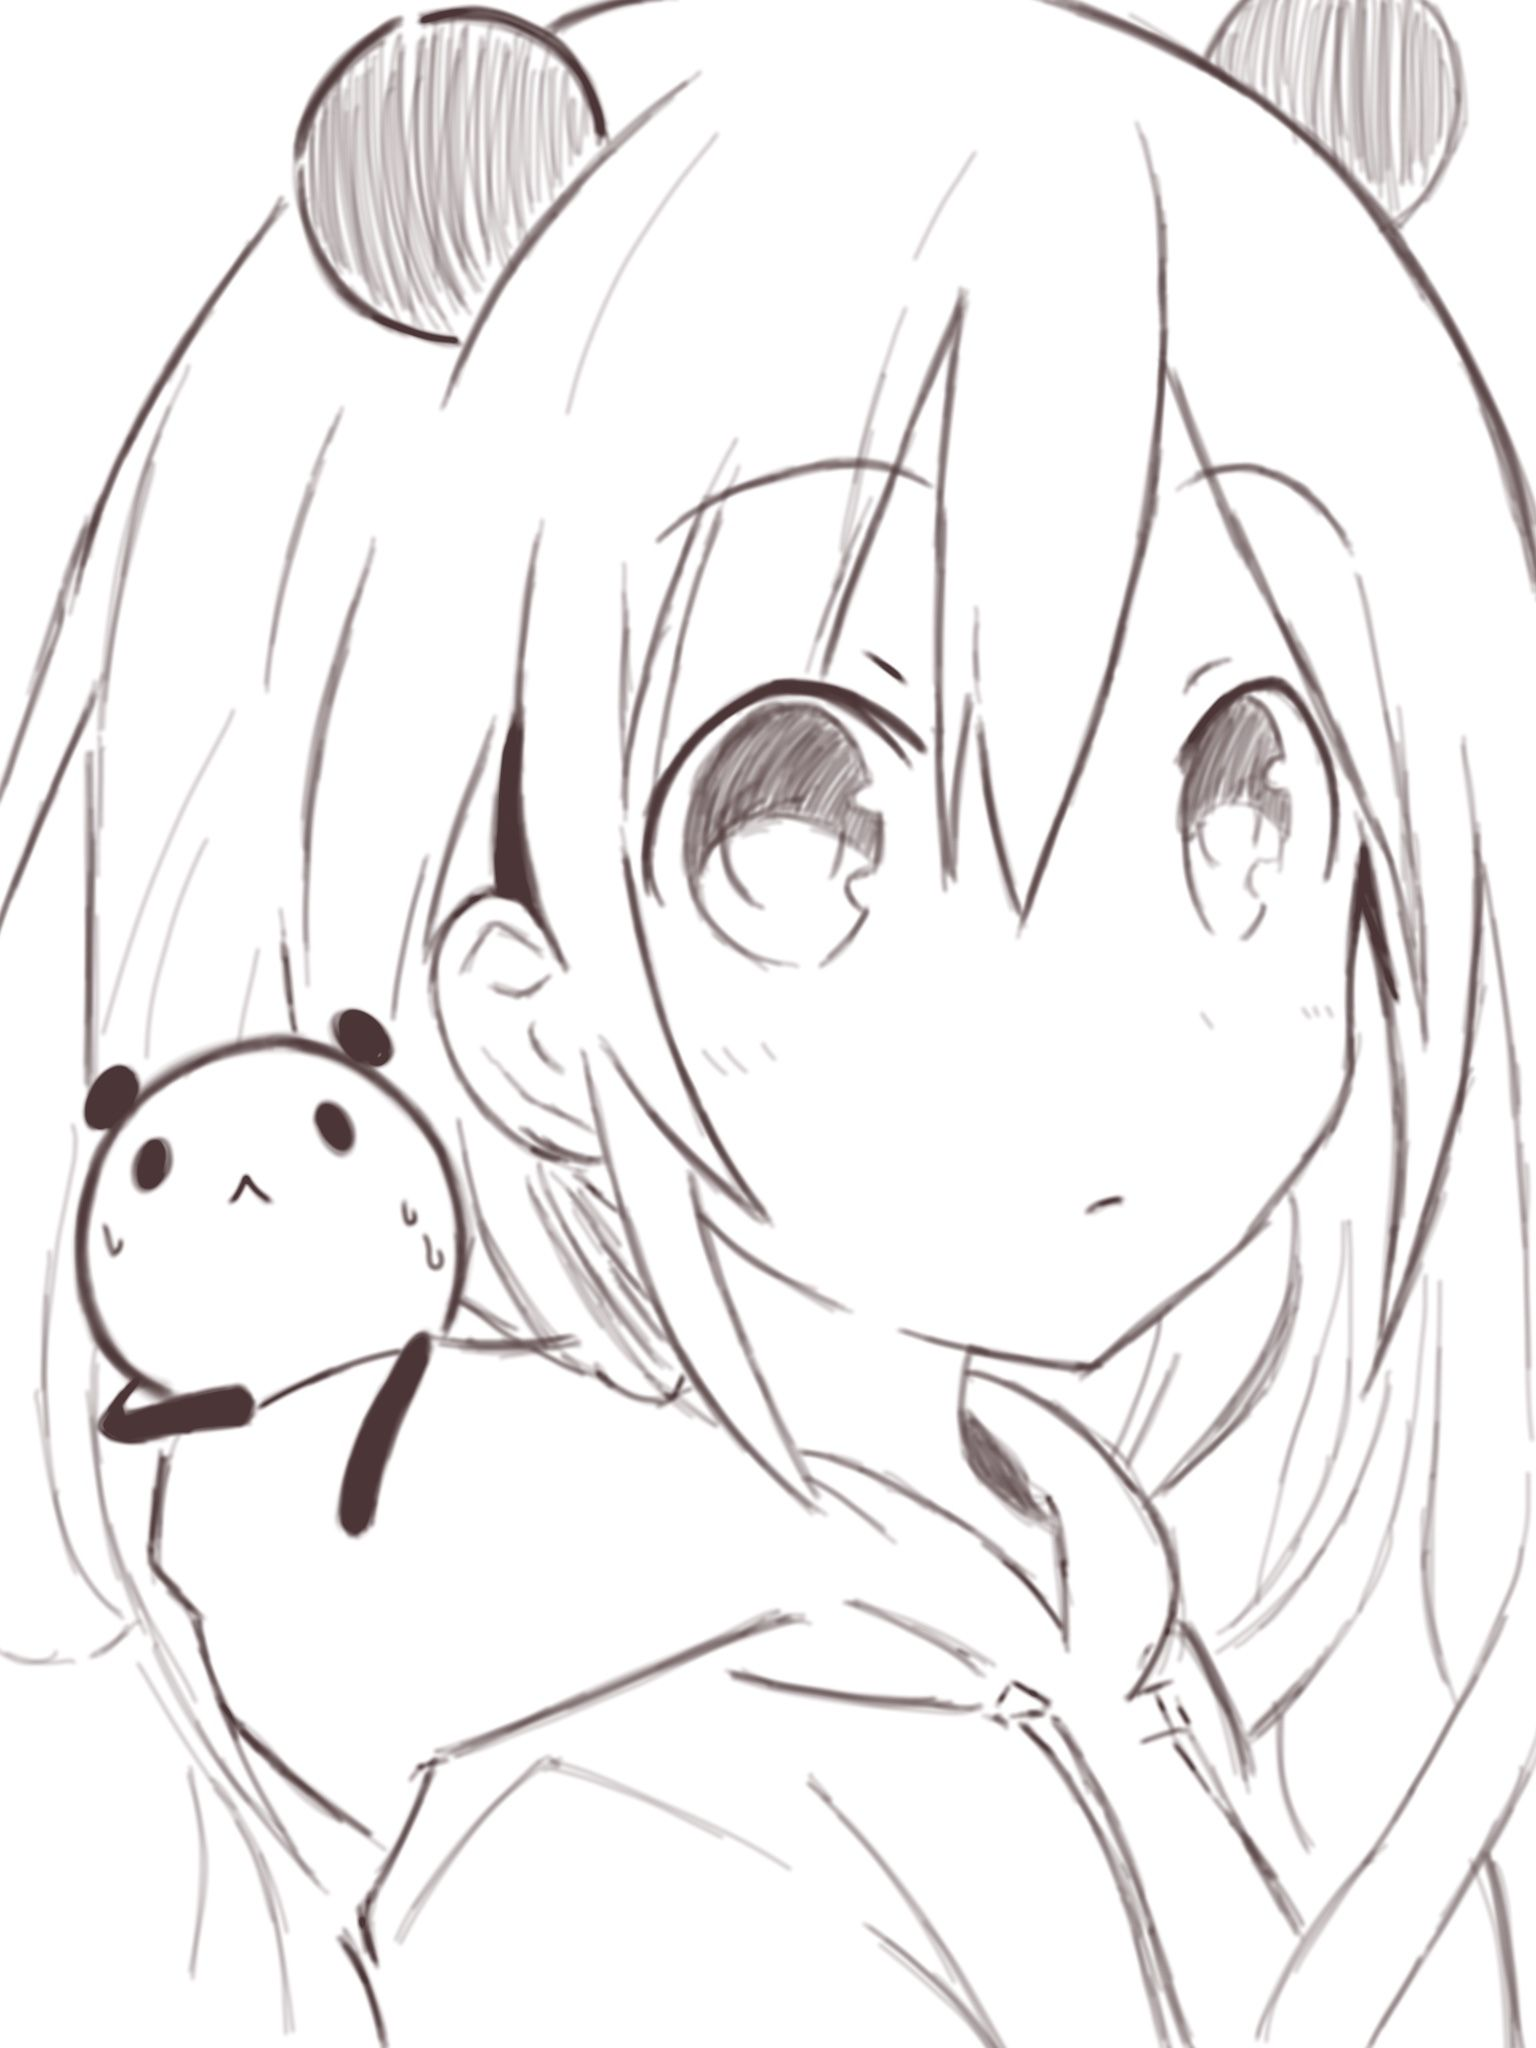 Anime. Anime Girl. Short White Hair. Panda. Kawaii